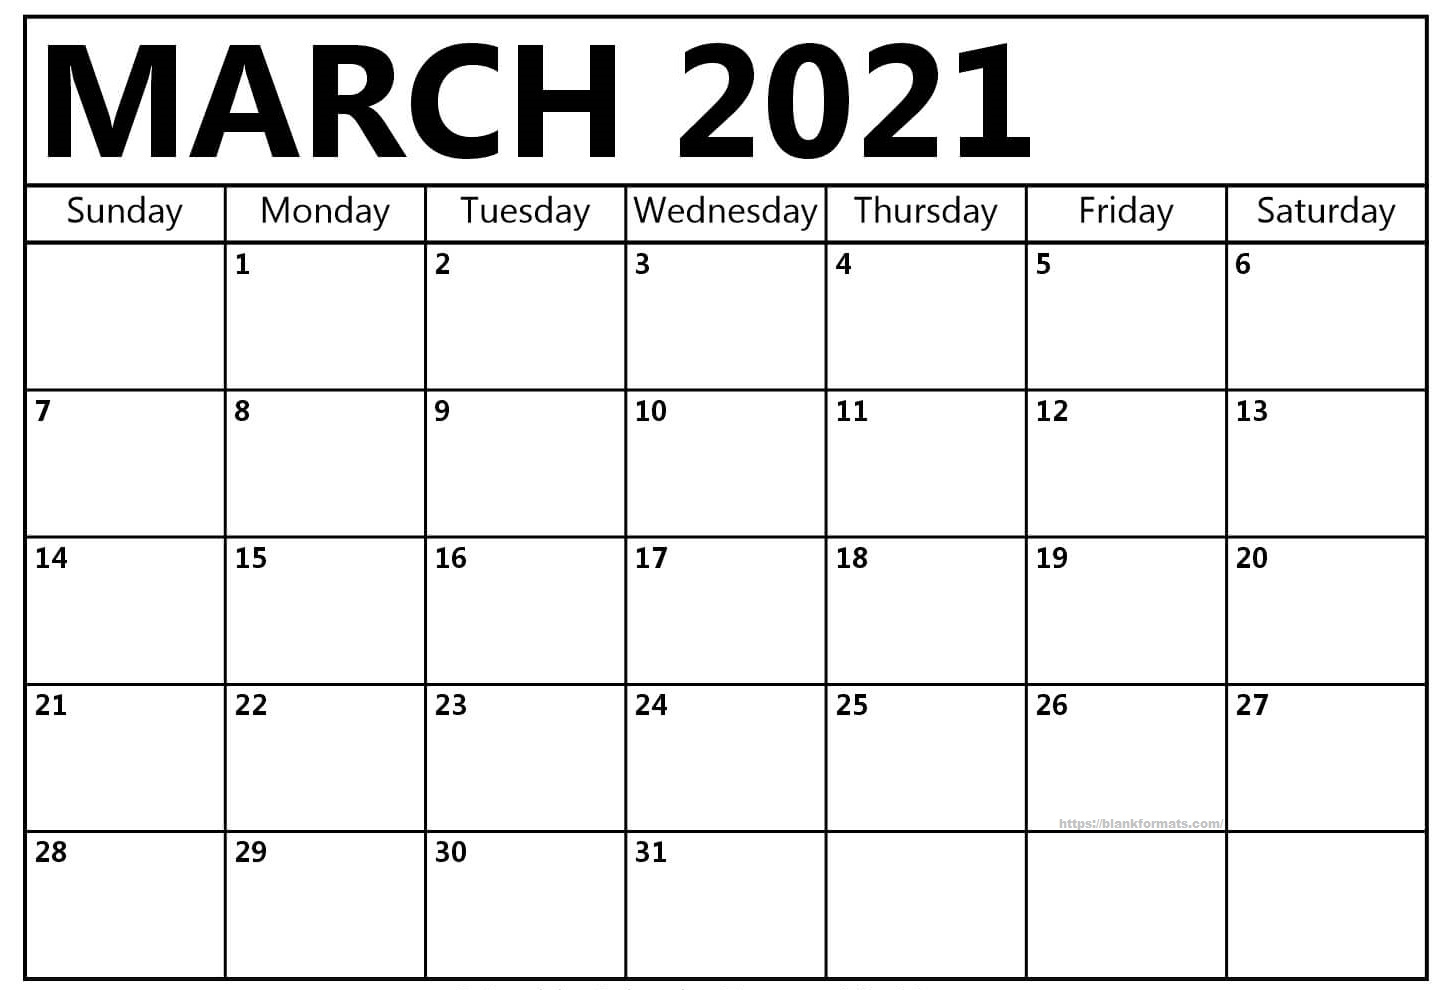 Blank March 2021 Calendar For Daily Schedule Management